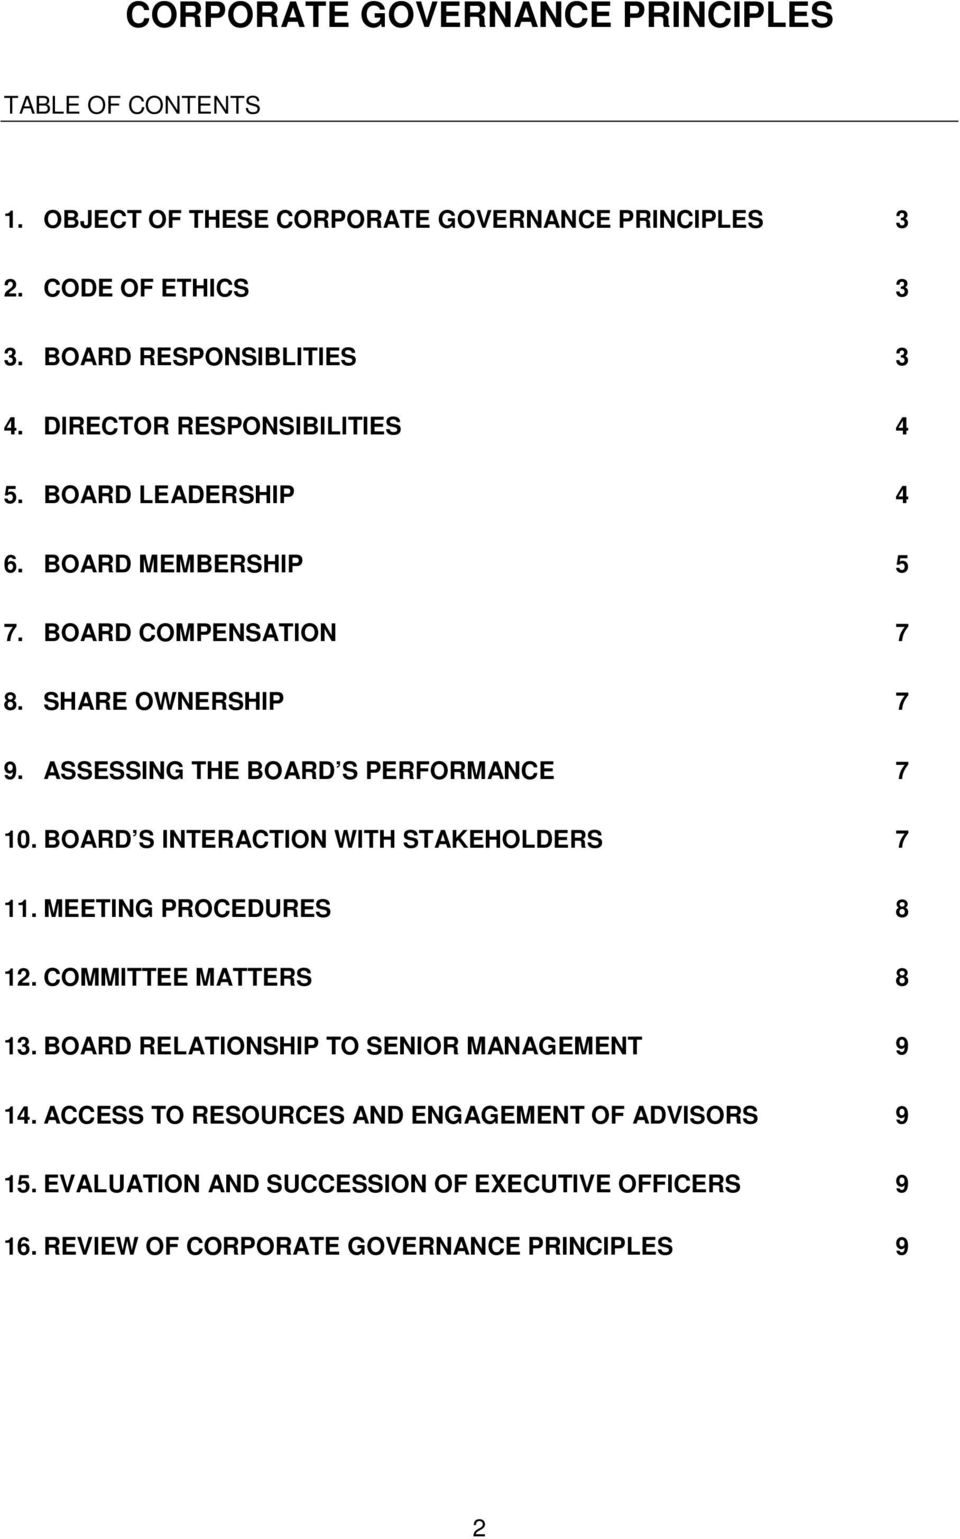 ASSESSING THE BOARD S PERFORMANCE 7 10. BOARD S INTERACTION WITH STAKEHOLDERS 7 11. MEETING PROCEDURES 8 12. COMMITTEE MATTERS 8 13.